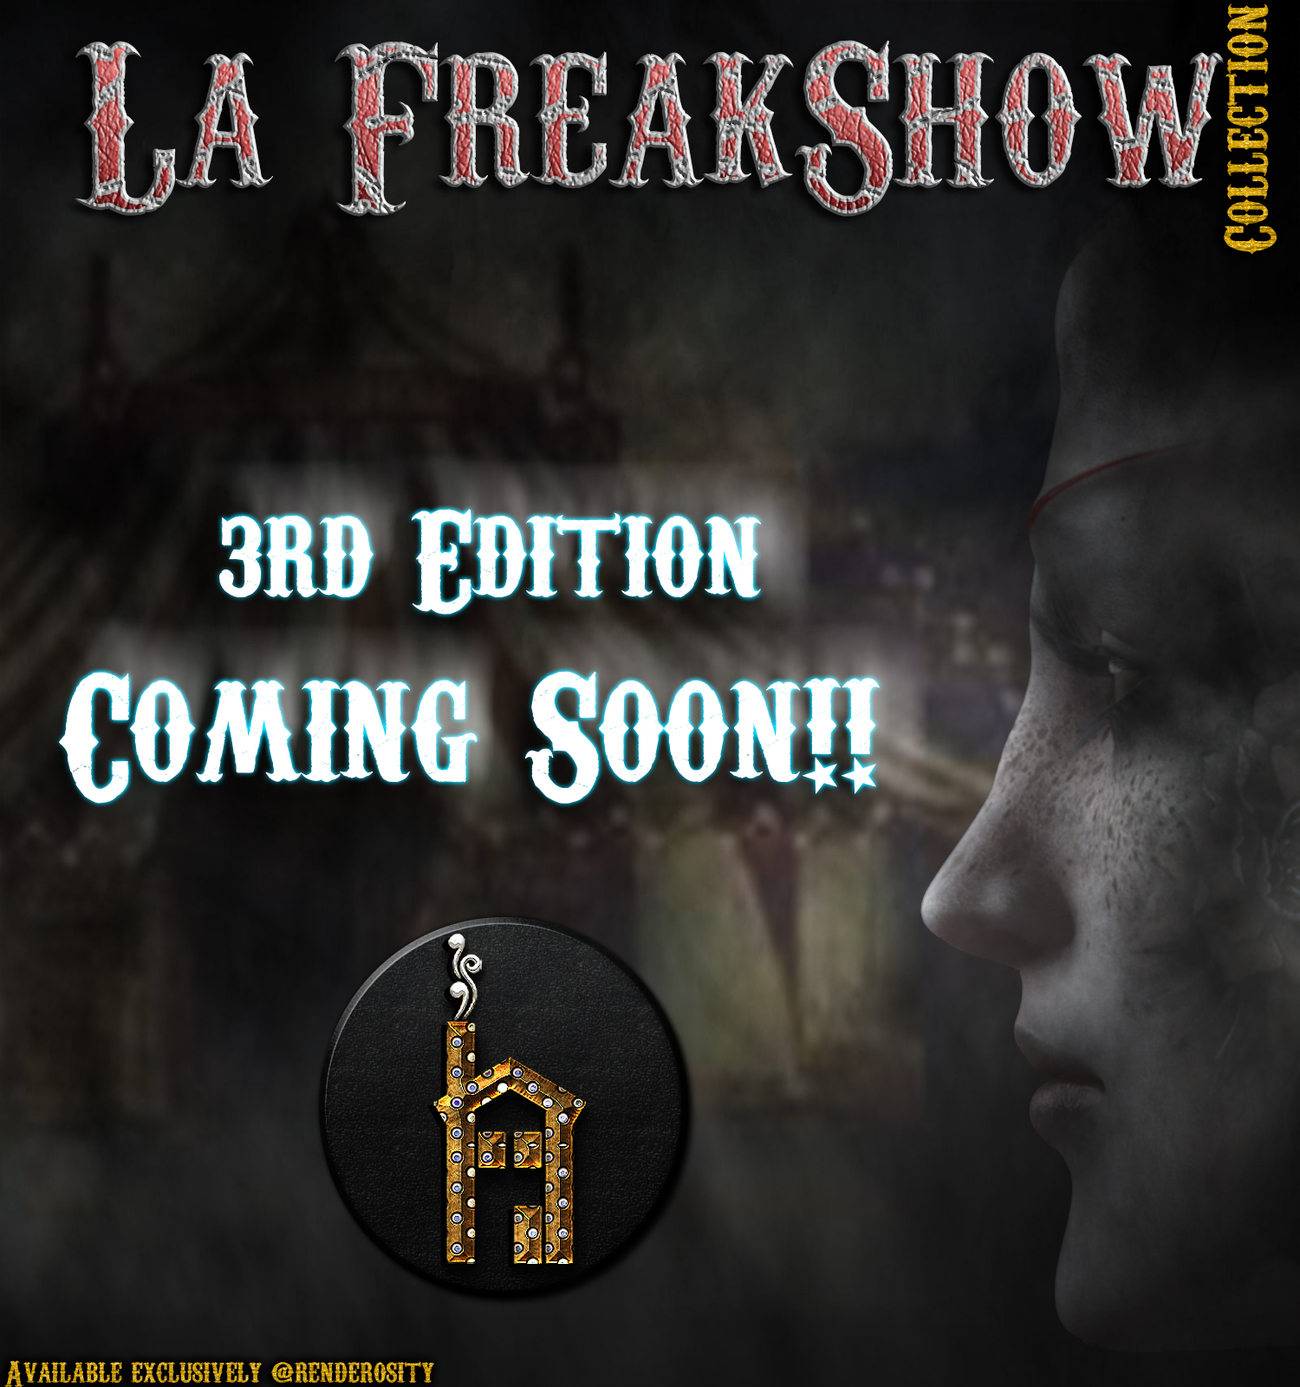 La FreakShow Collection 3rd Edition Coming Soon! by The_Row_House